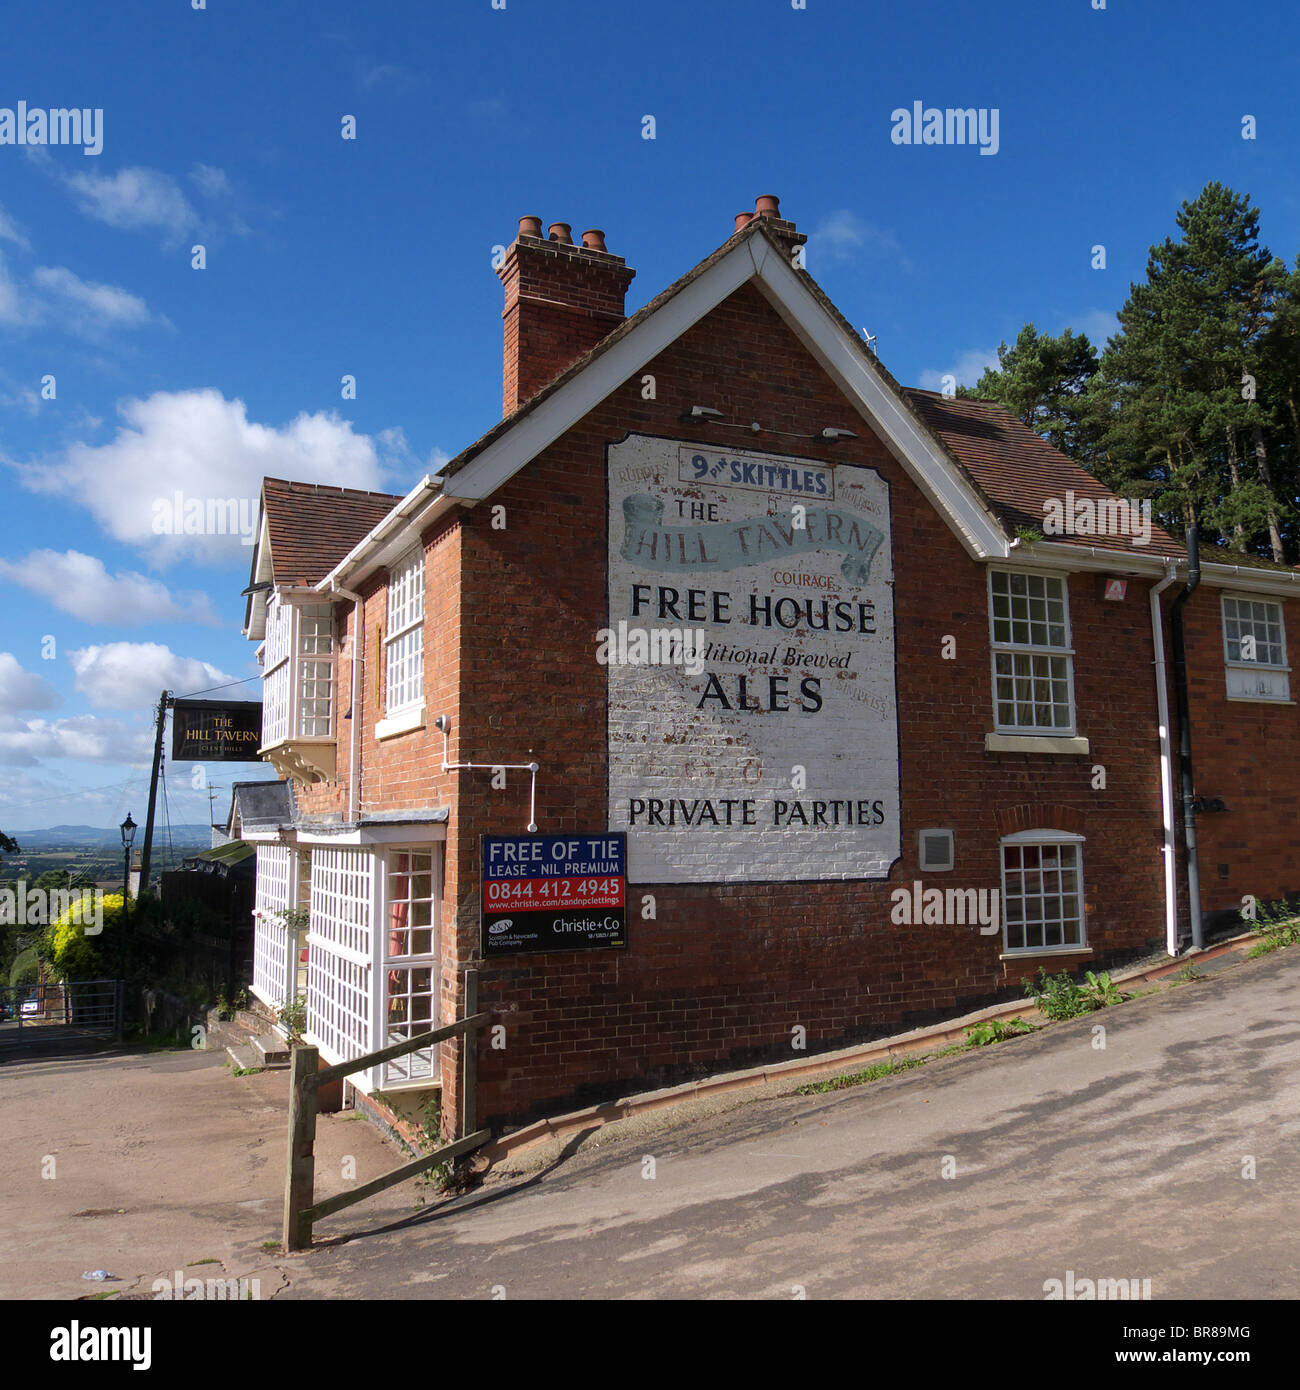 Public House trading as a Free House in Clent Village, Worcestershire, England, UK with its lease expired - Stock Image